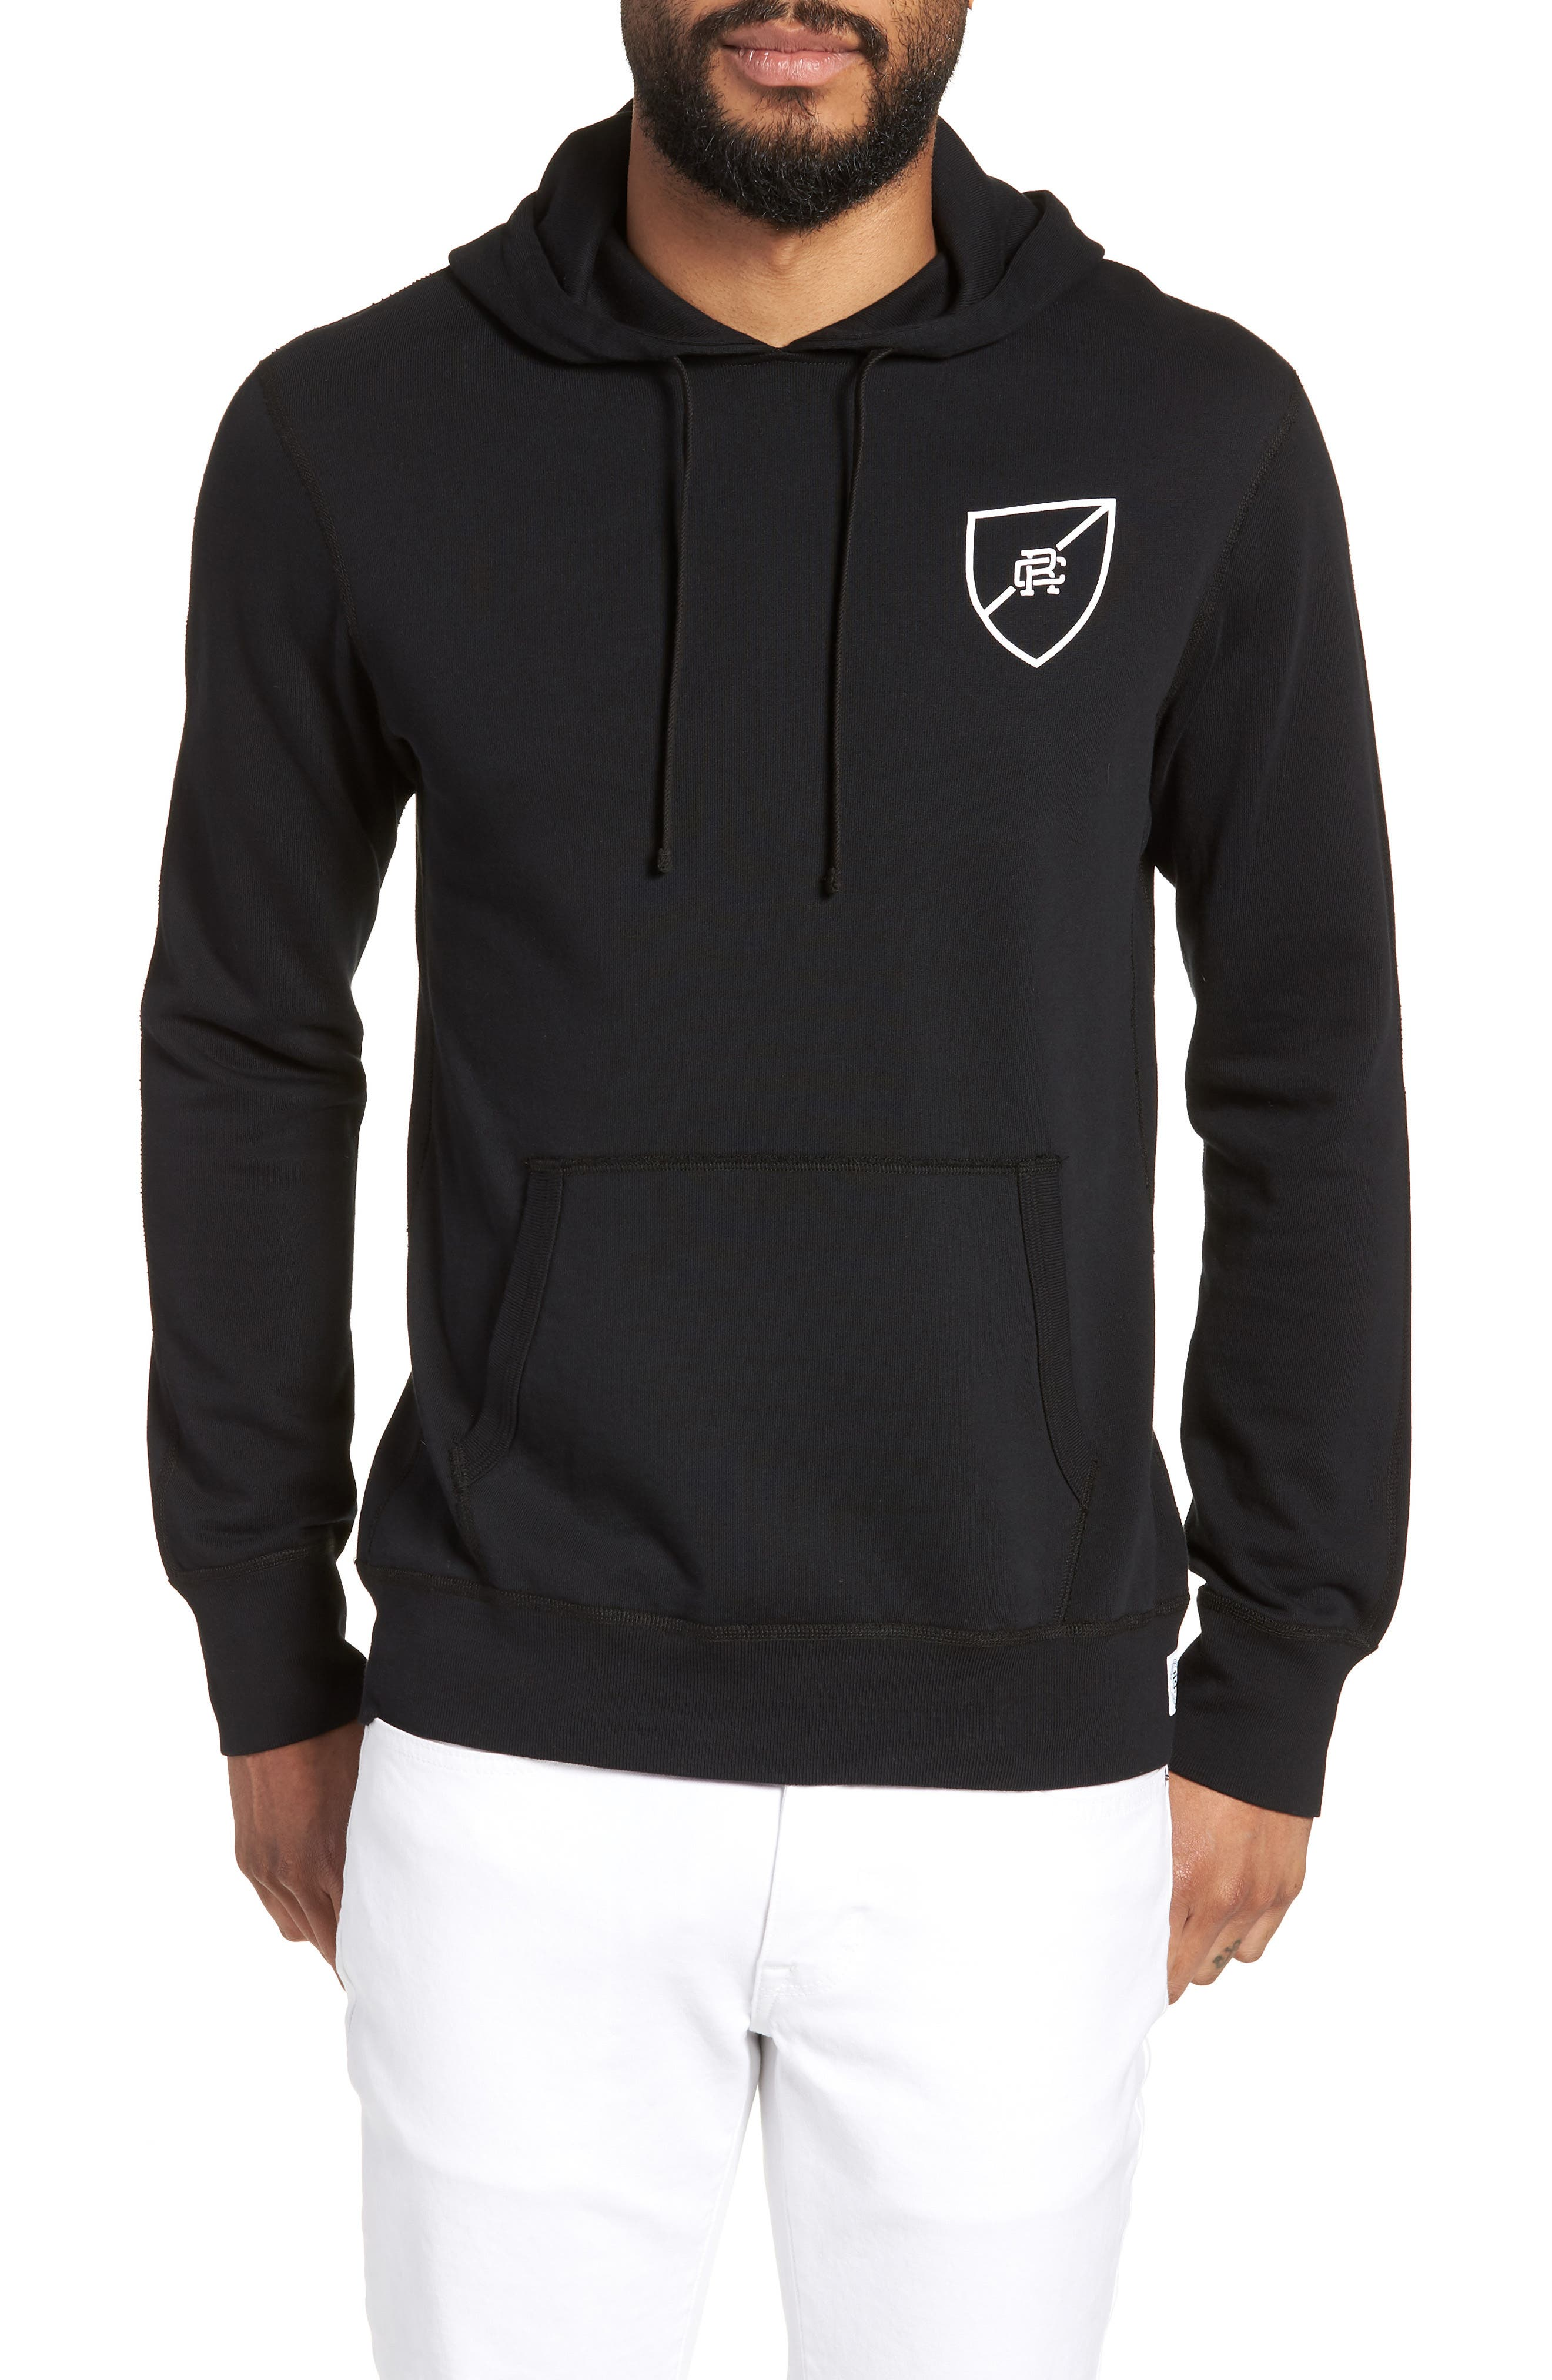 REIGNING CHAMP SHIELD LOGO HOODED PULLOVER